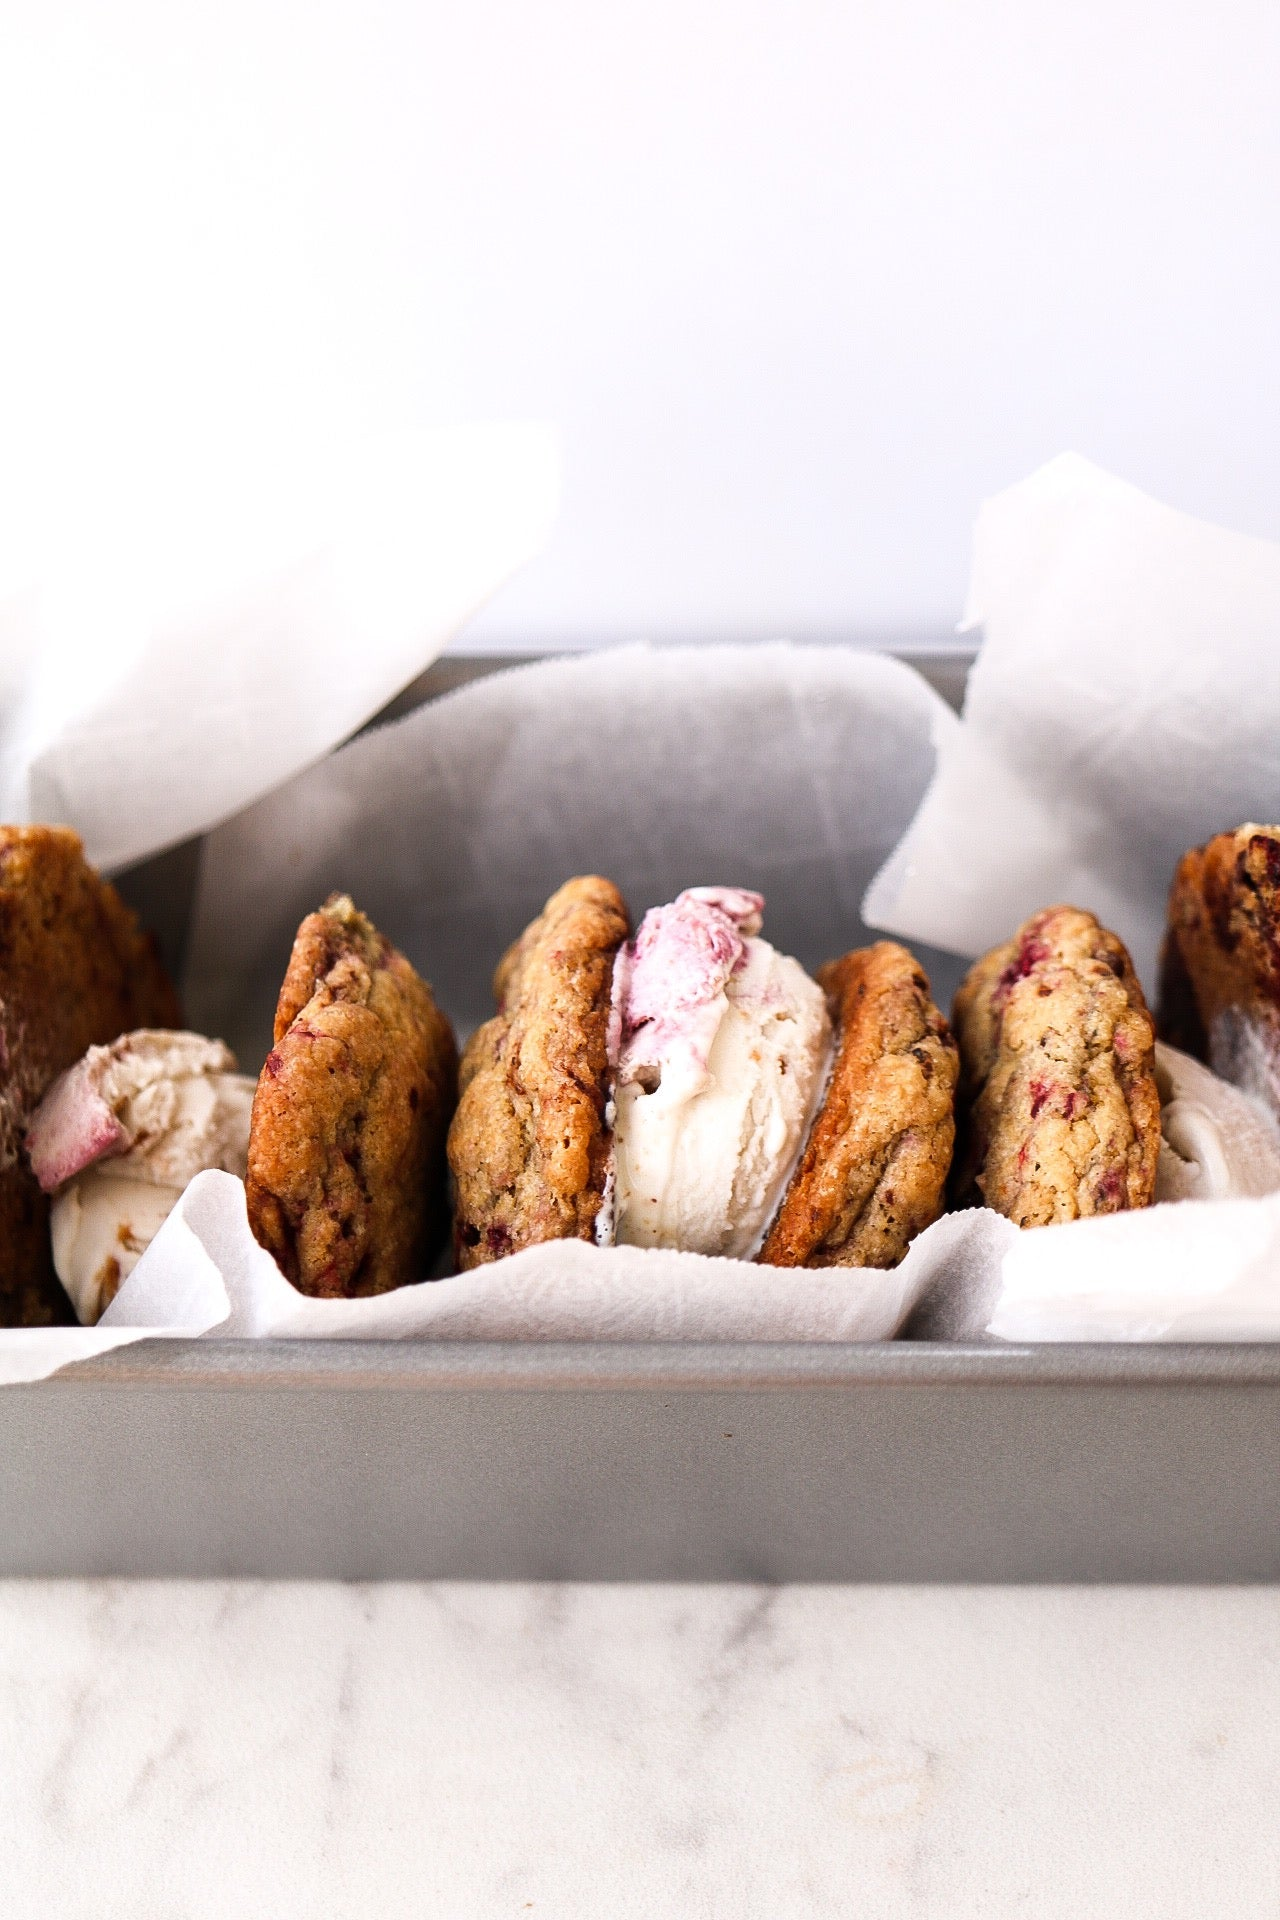 Raspberry Chocolate Chunk Ice Cream Sandwiches Article